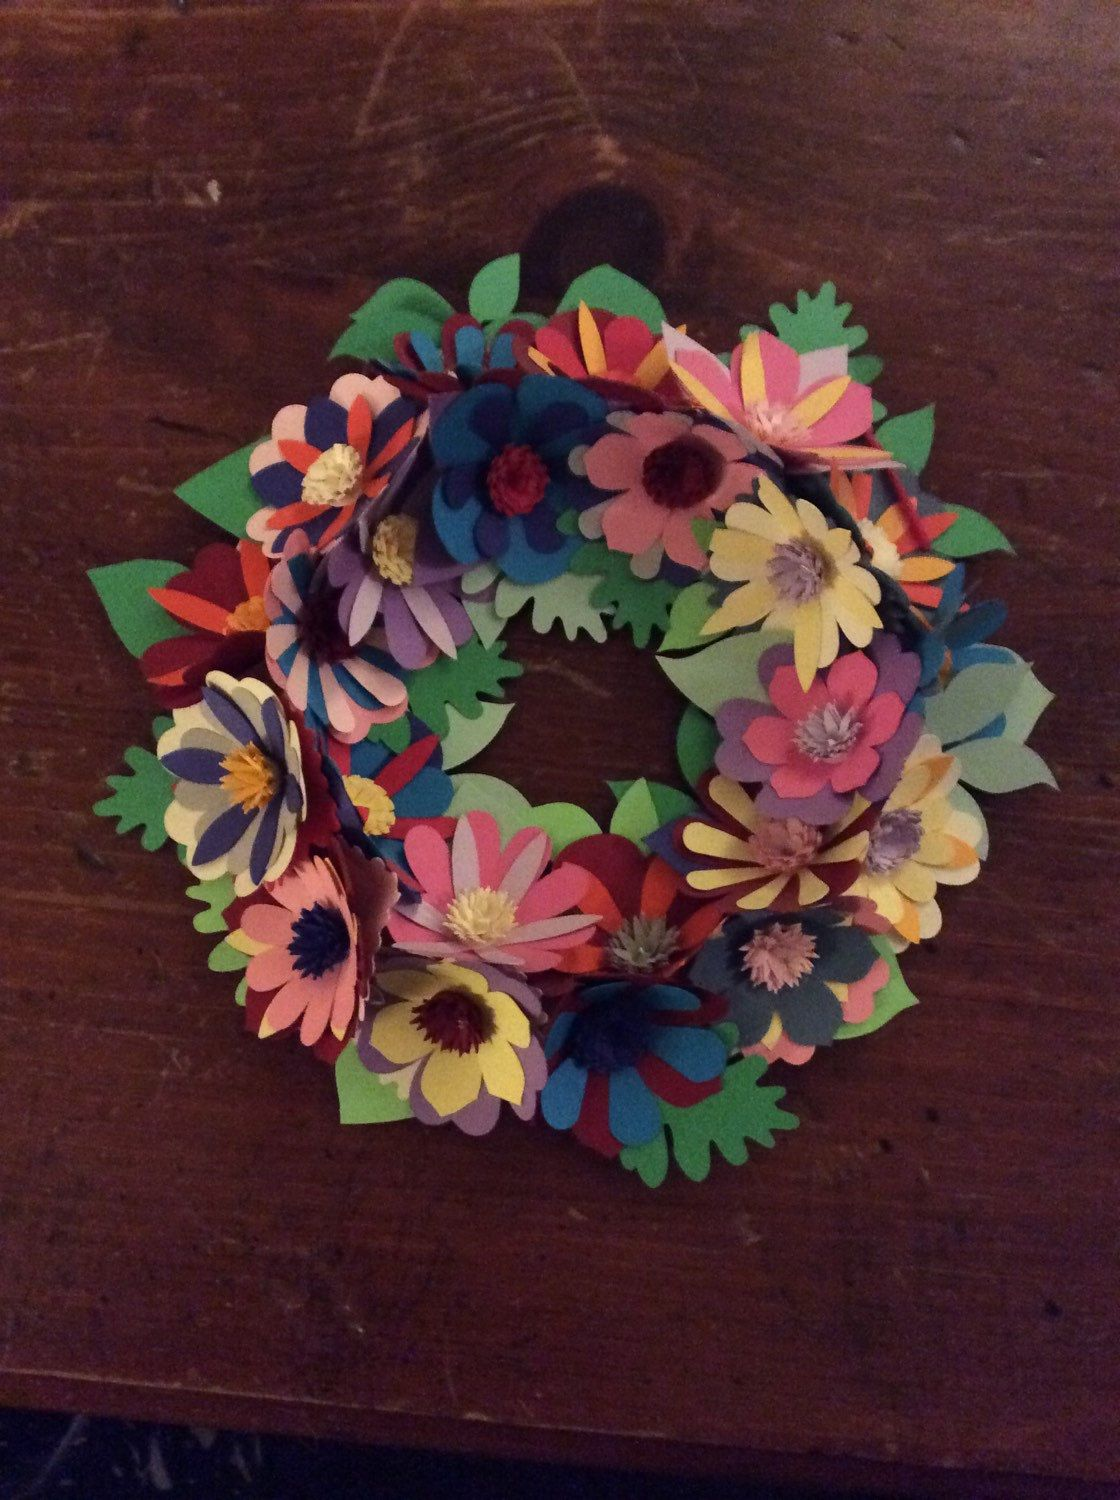 Paper Flower Wall HangingWreath